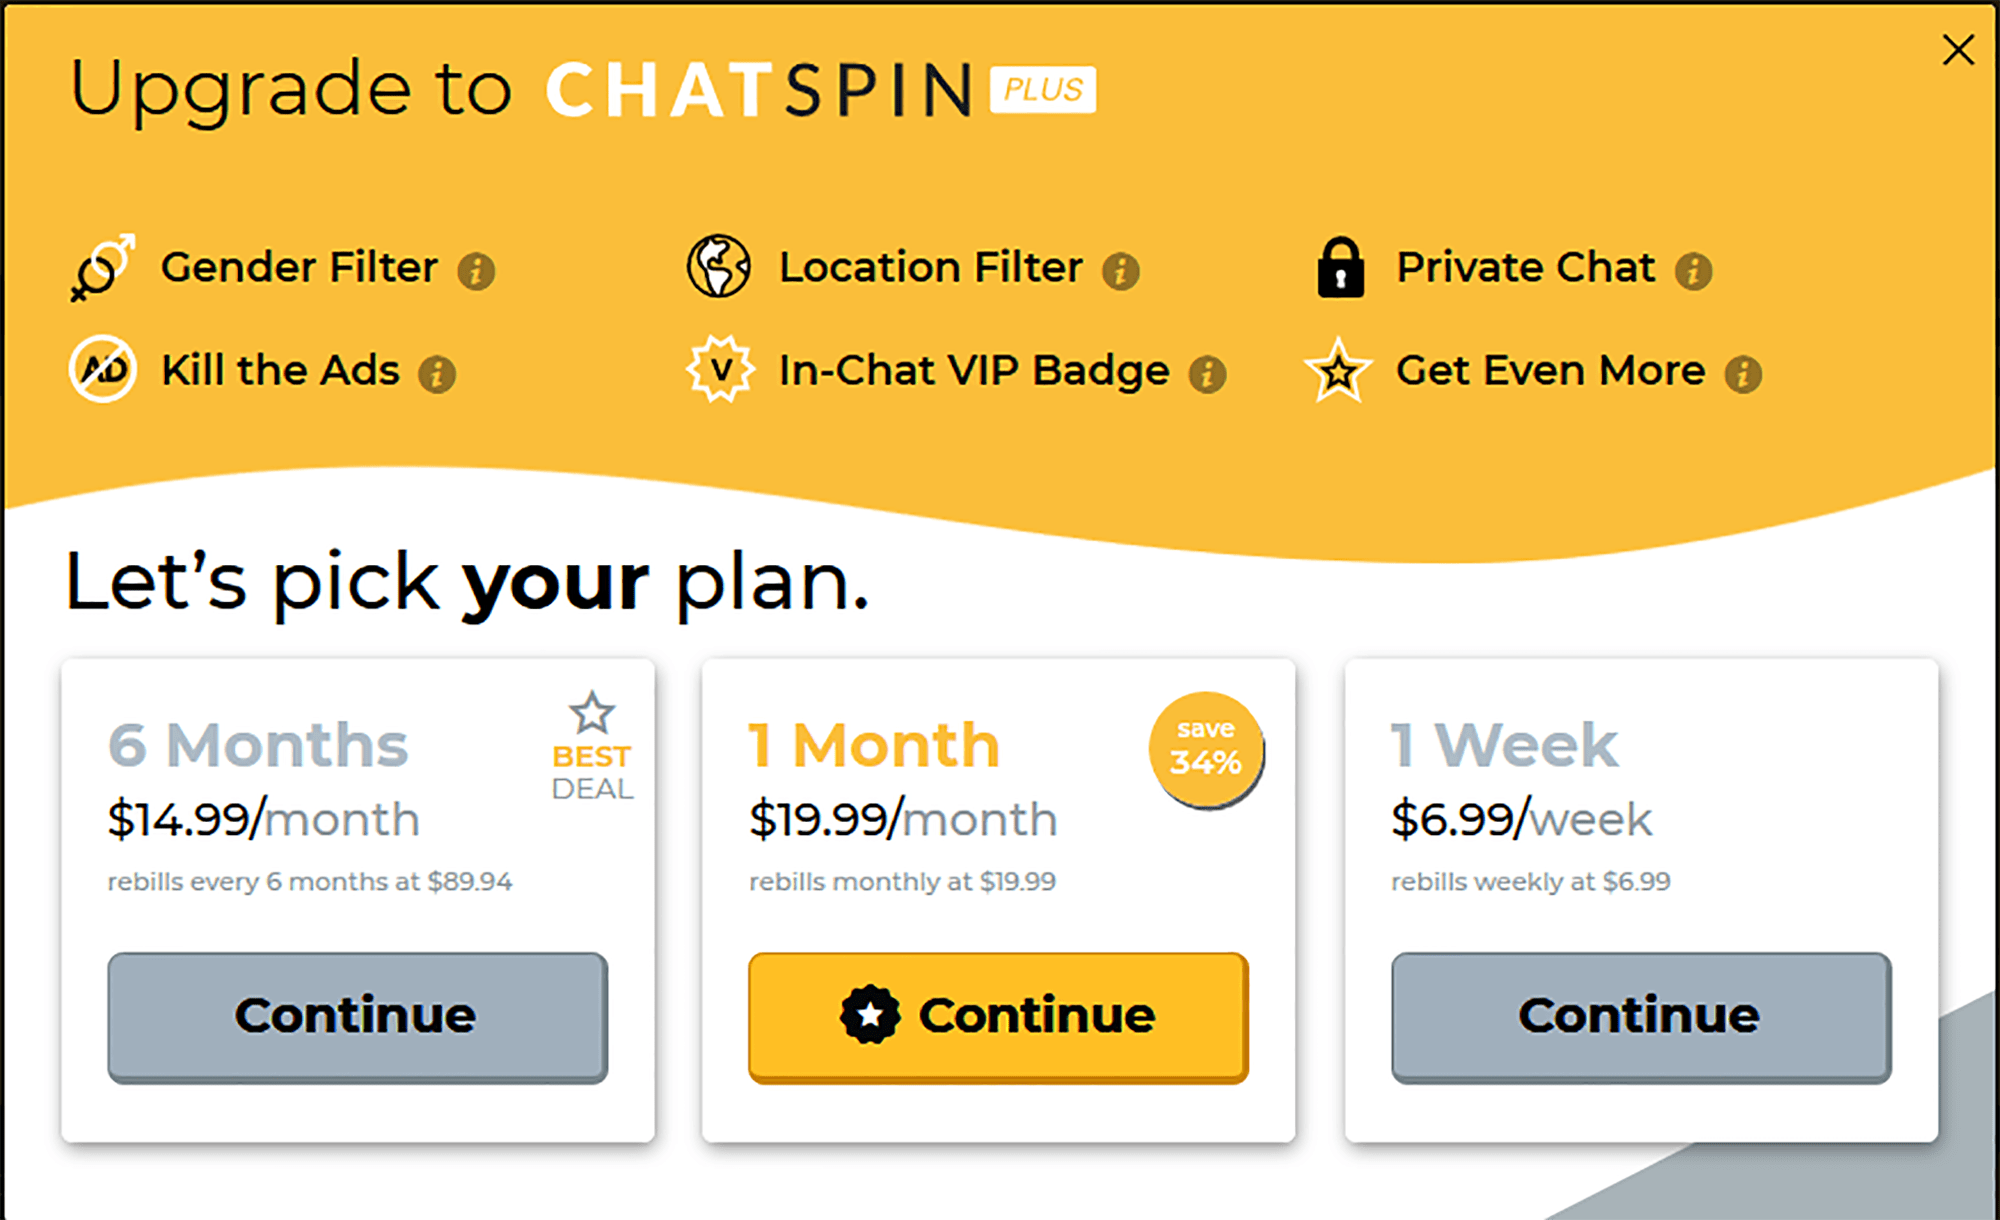 Chat spin plus